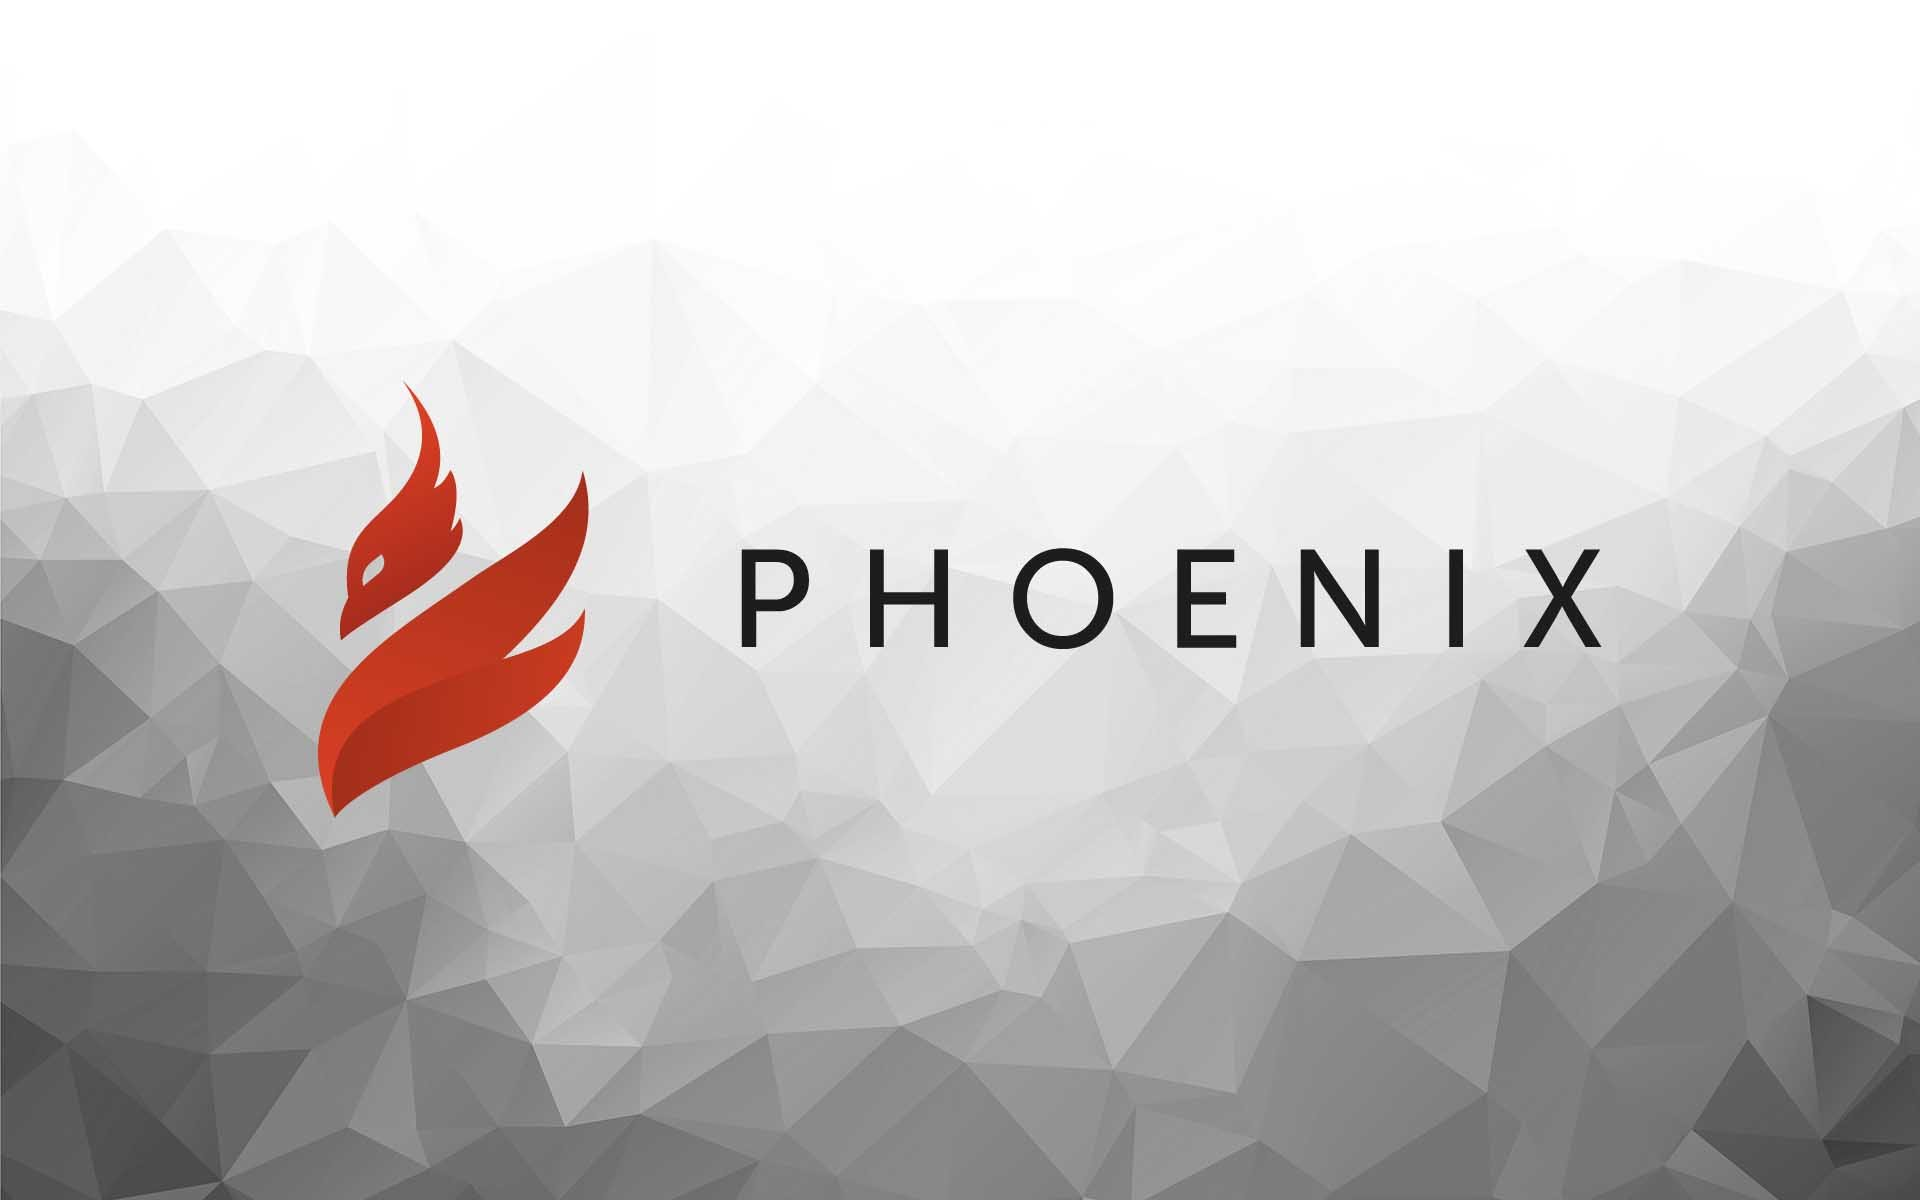 Phoenix Provides the Rebirth of Cryptocurrency Investing Through Secure Smart Contracts